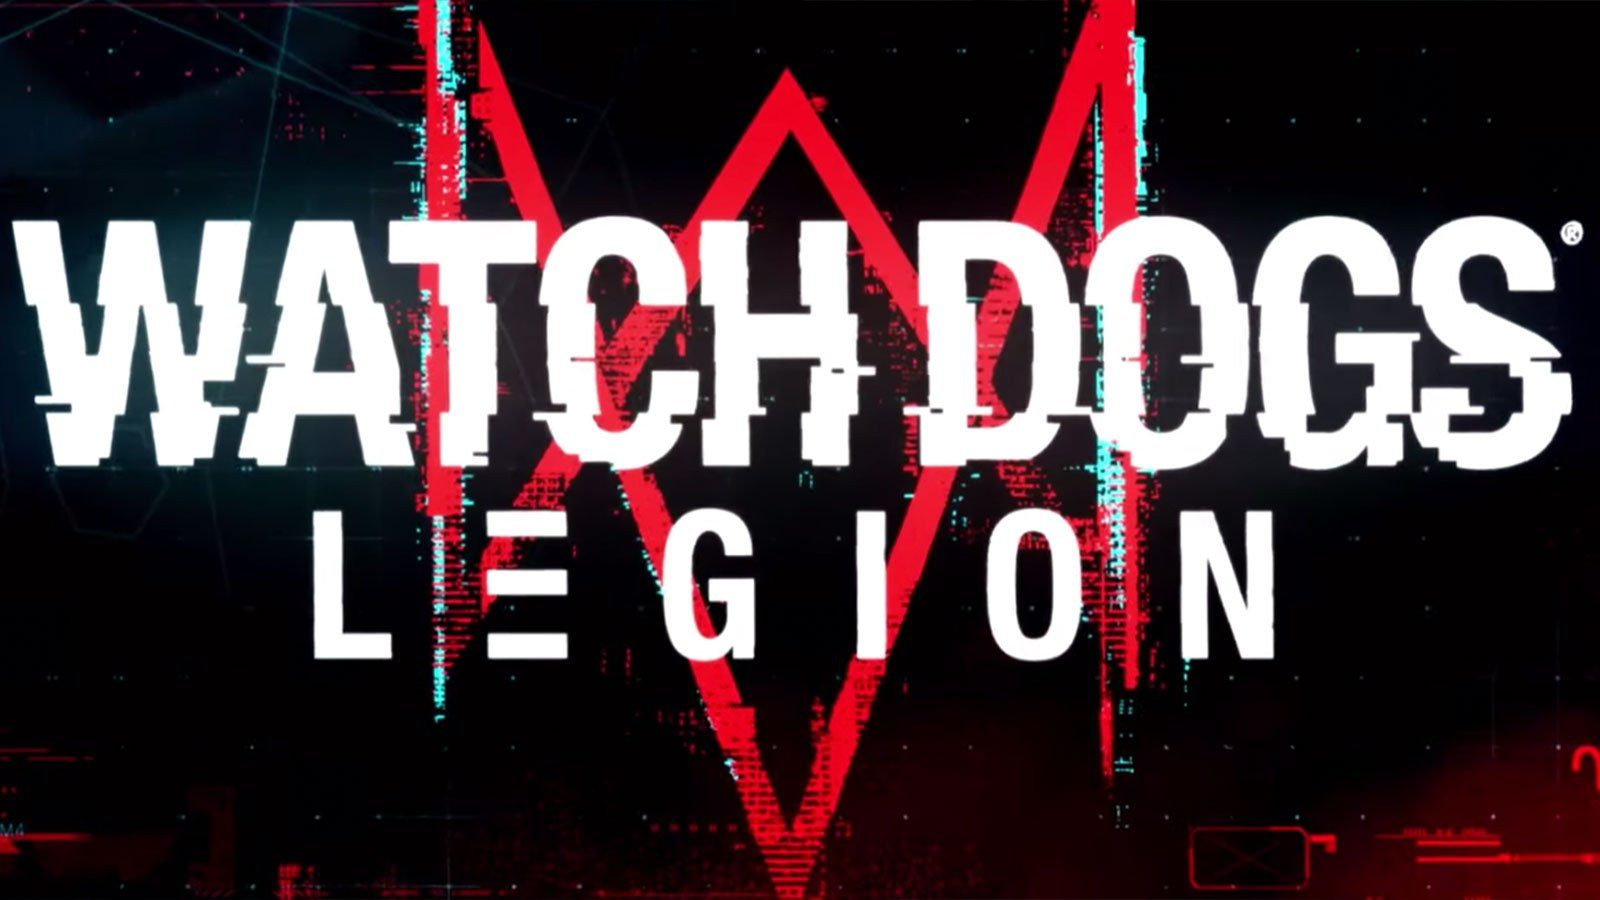 Watch Dogs Legion Wallpaper Posted By Michelle Johnson